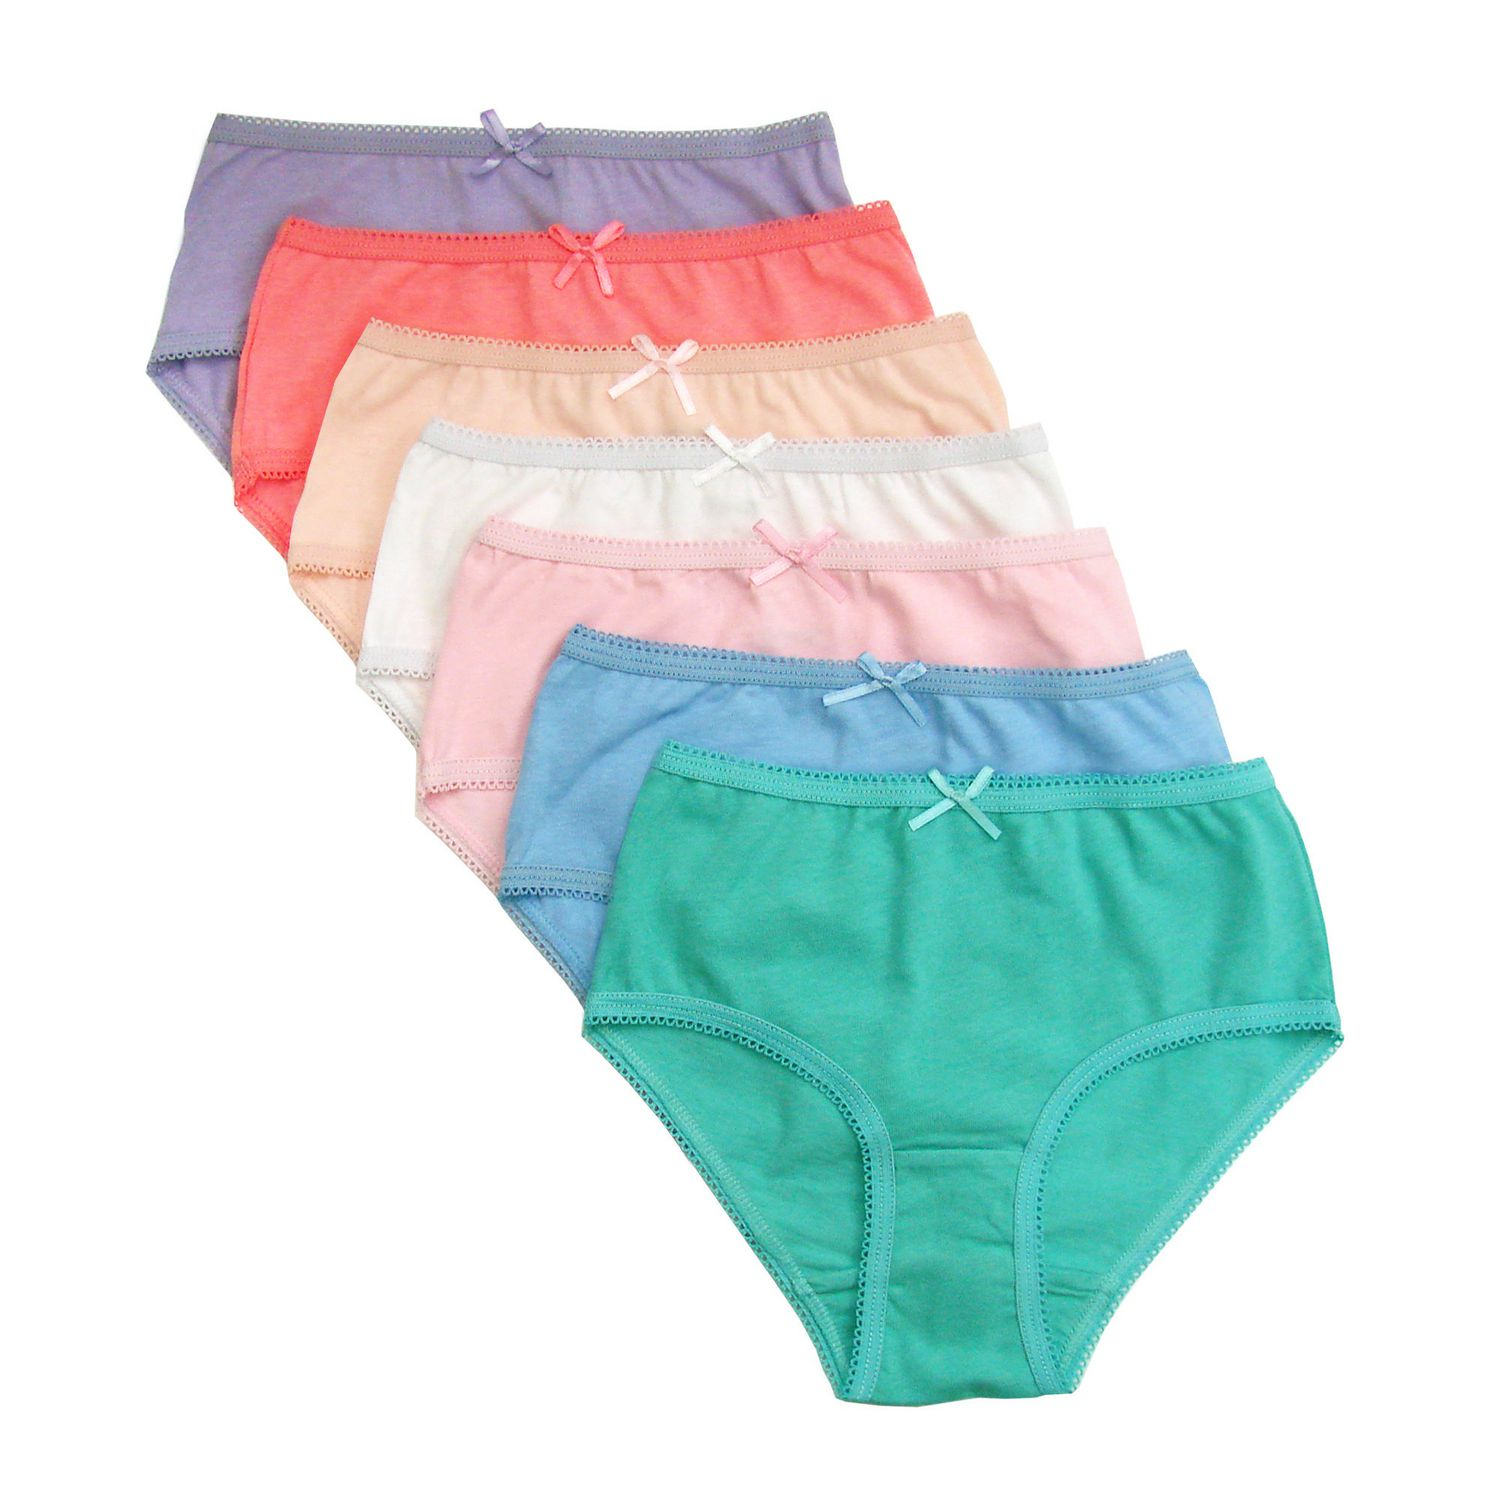 Pack of 7. Age 2 to 3 Go-Gifts Kids Cotton Briefs girls Briefs